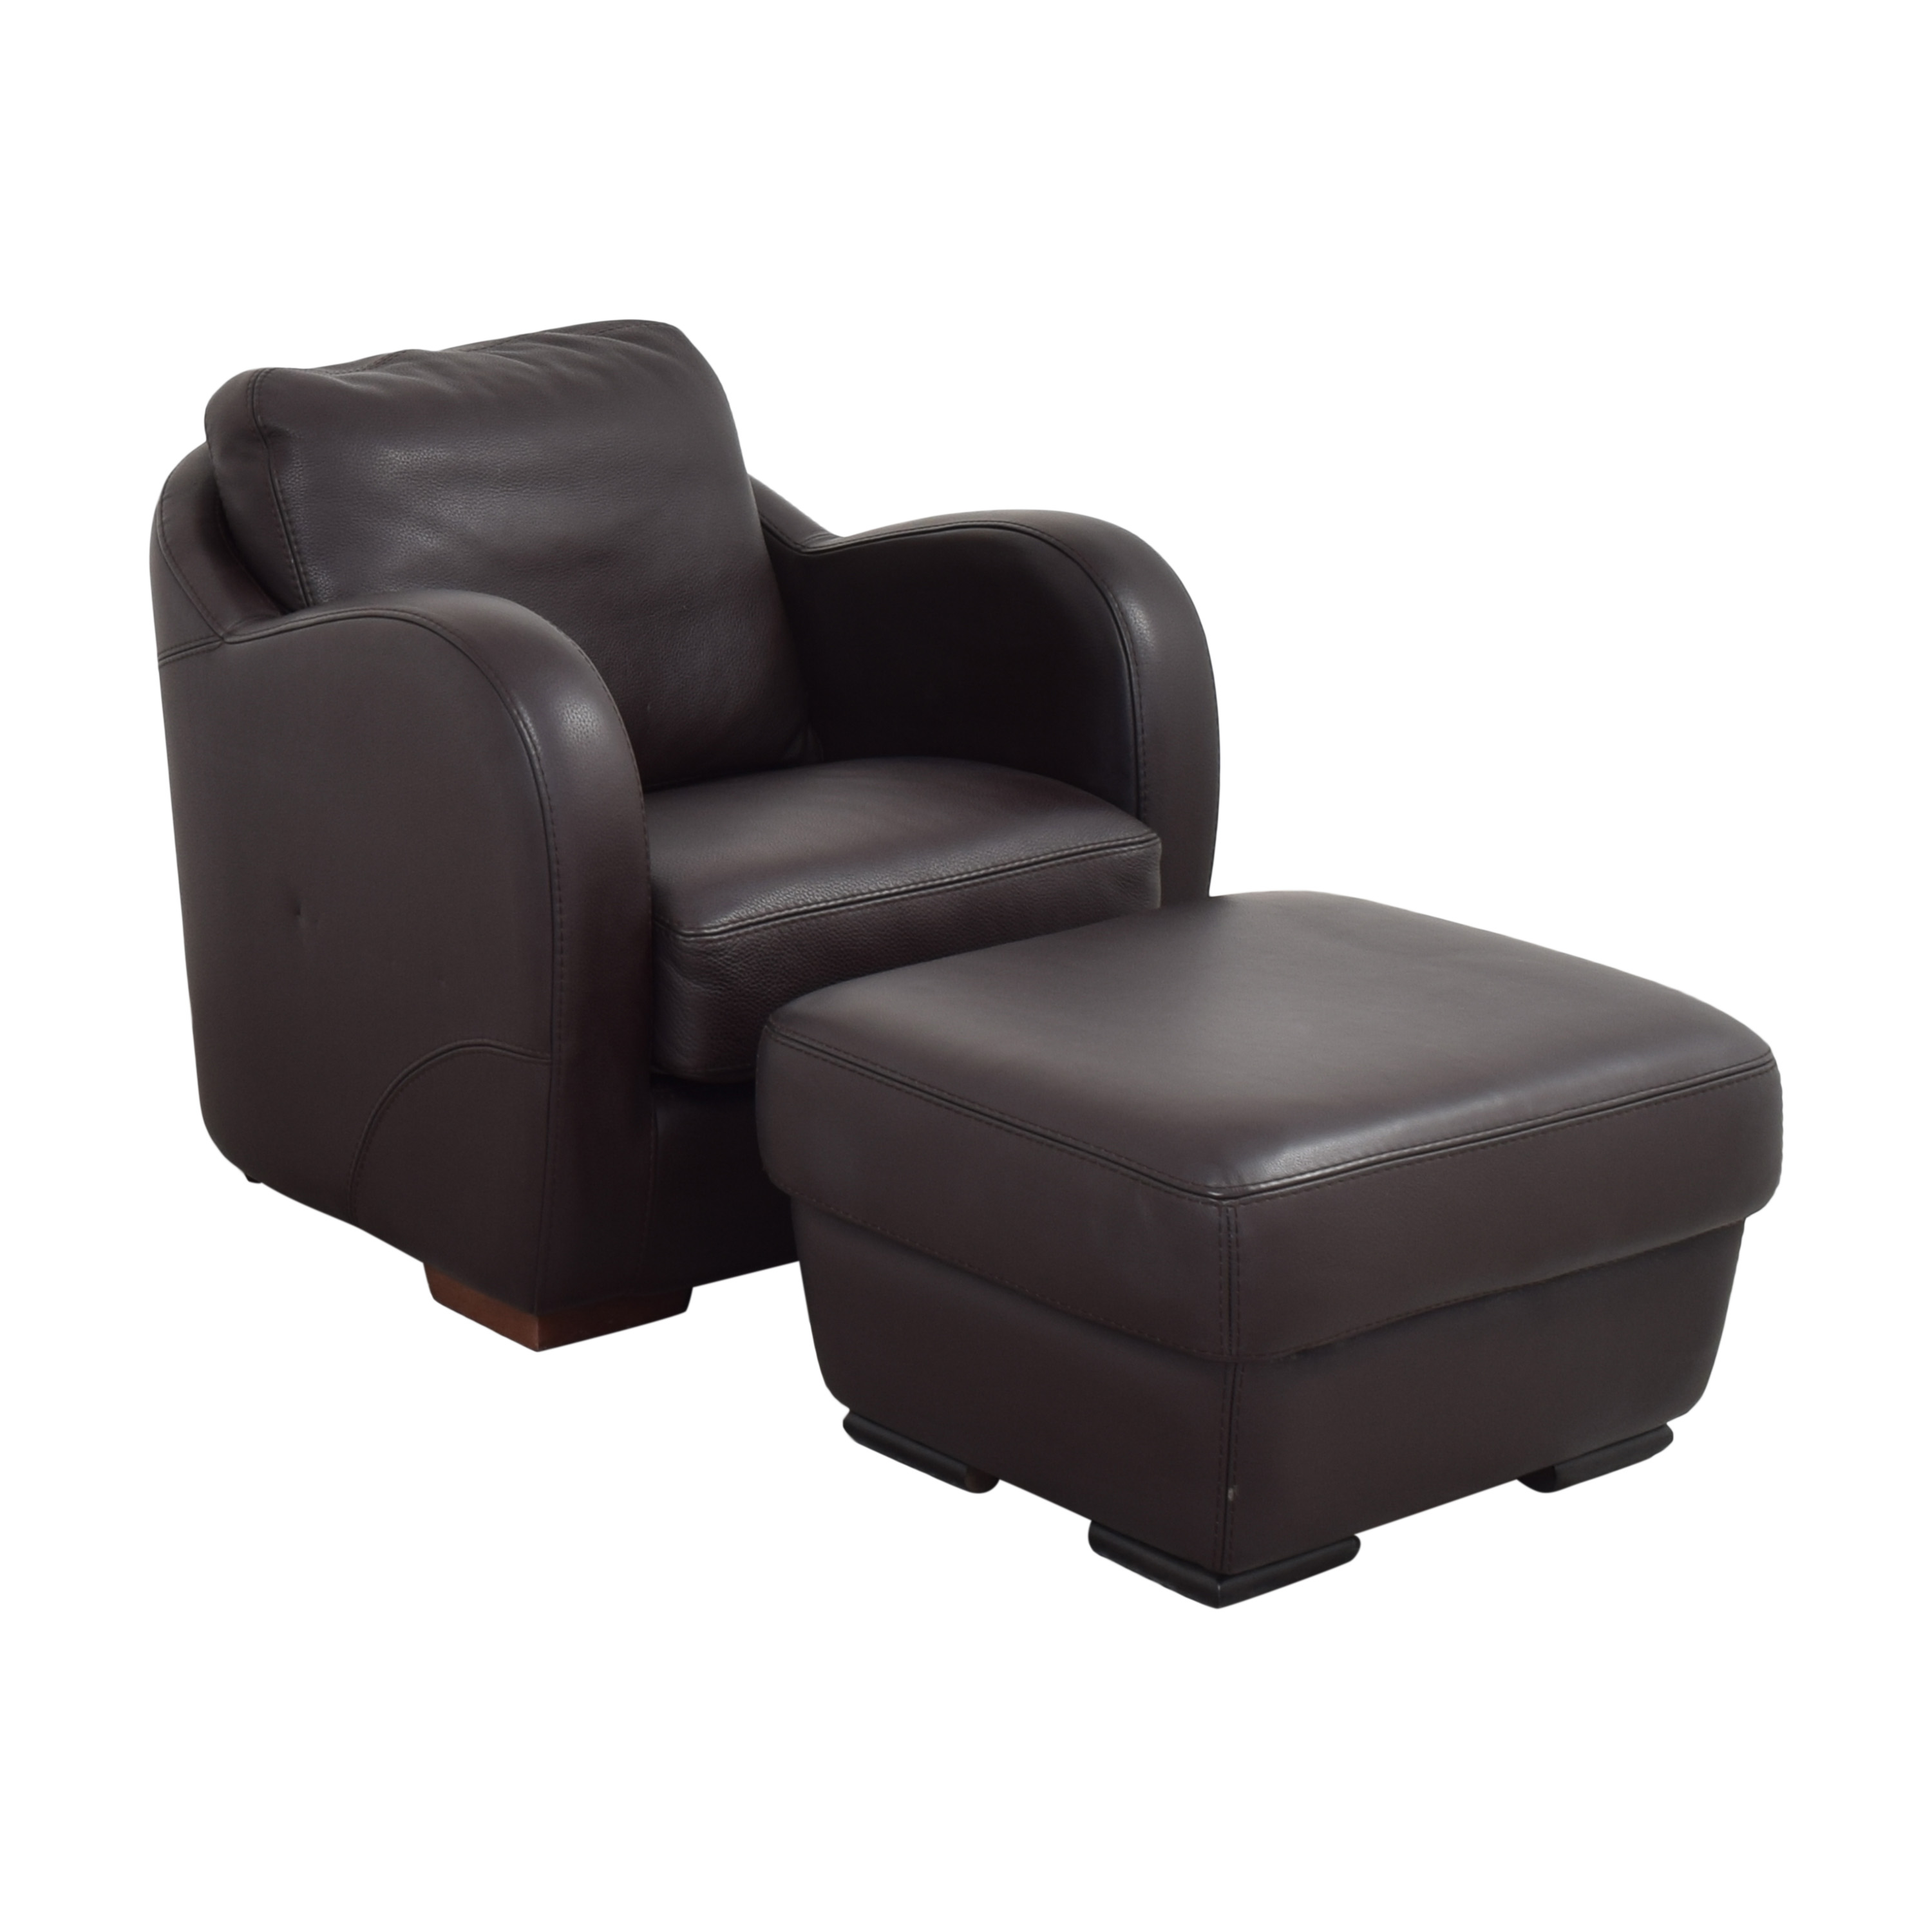 buy Maurice Villency Maurice Villency Club Chair with Ottoman online